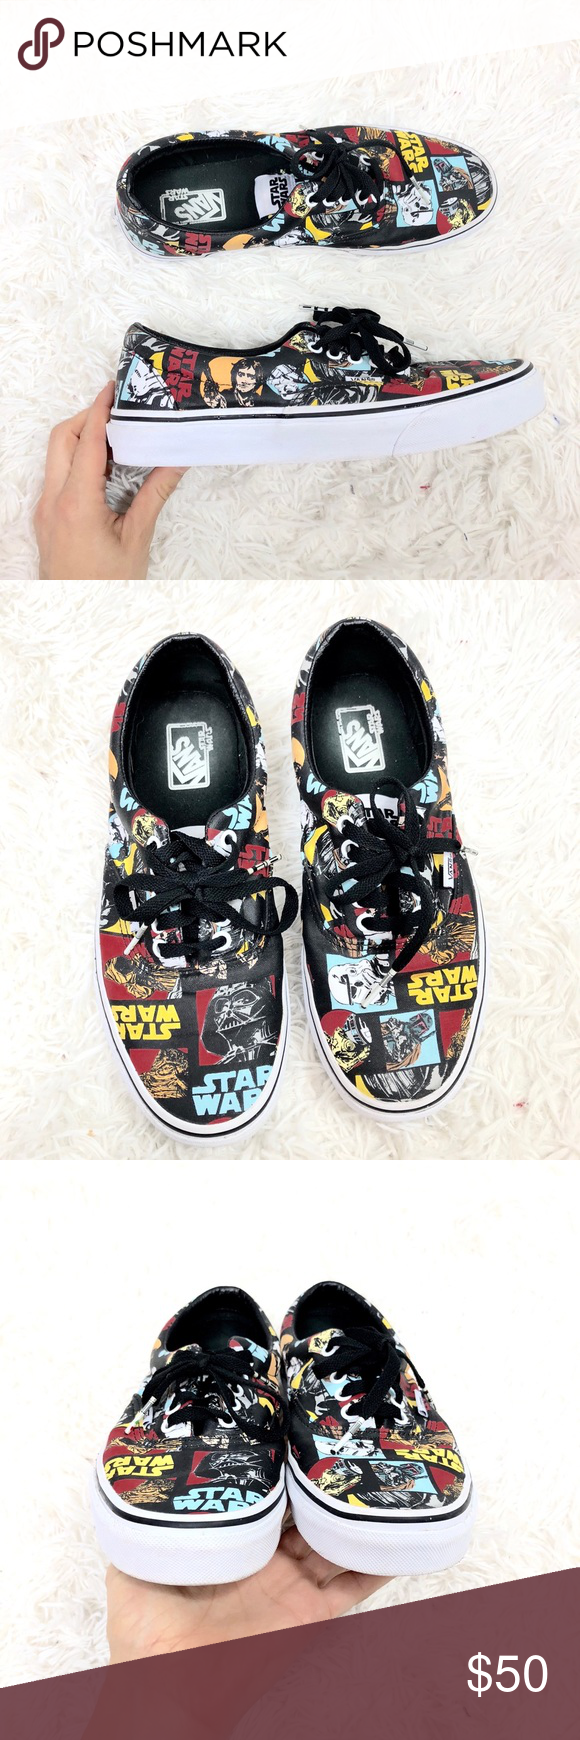 f382de157f Vans Star Wars Era Classic Repeat Shoes Up For Sale is the Perfect Shoe for  any